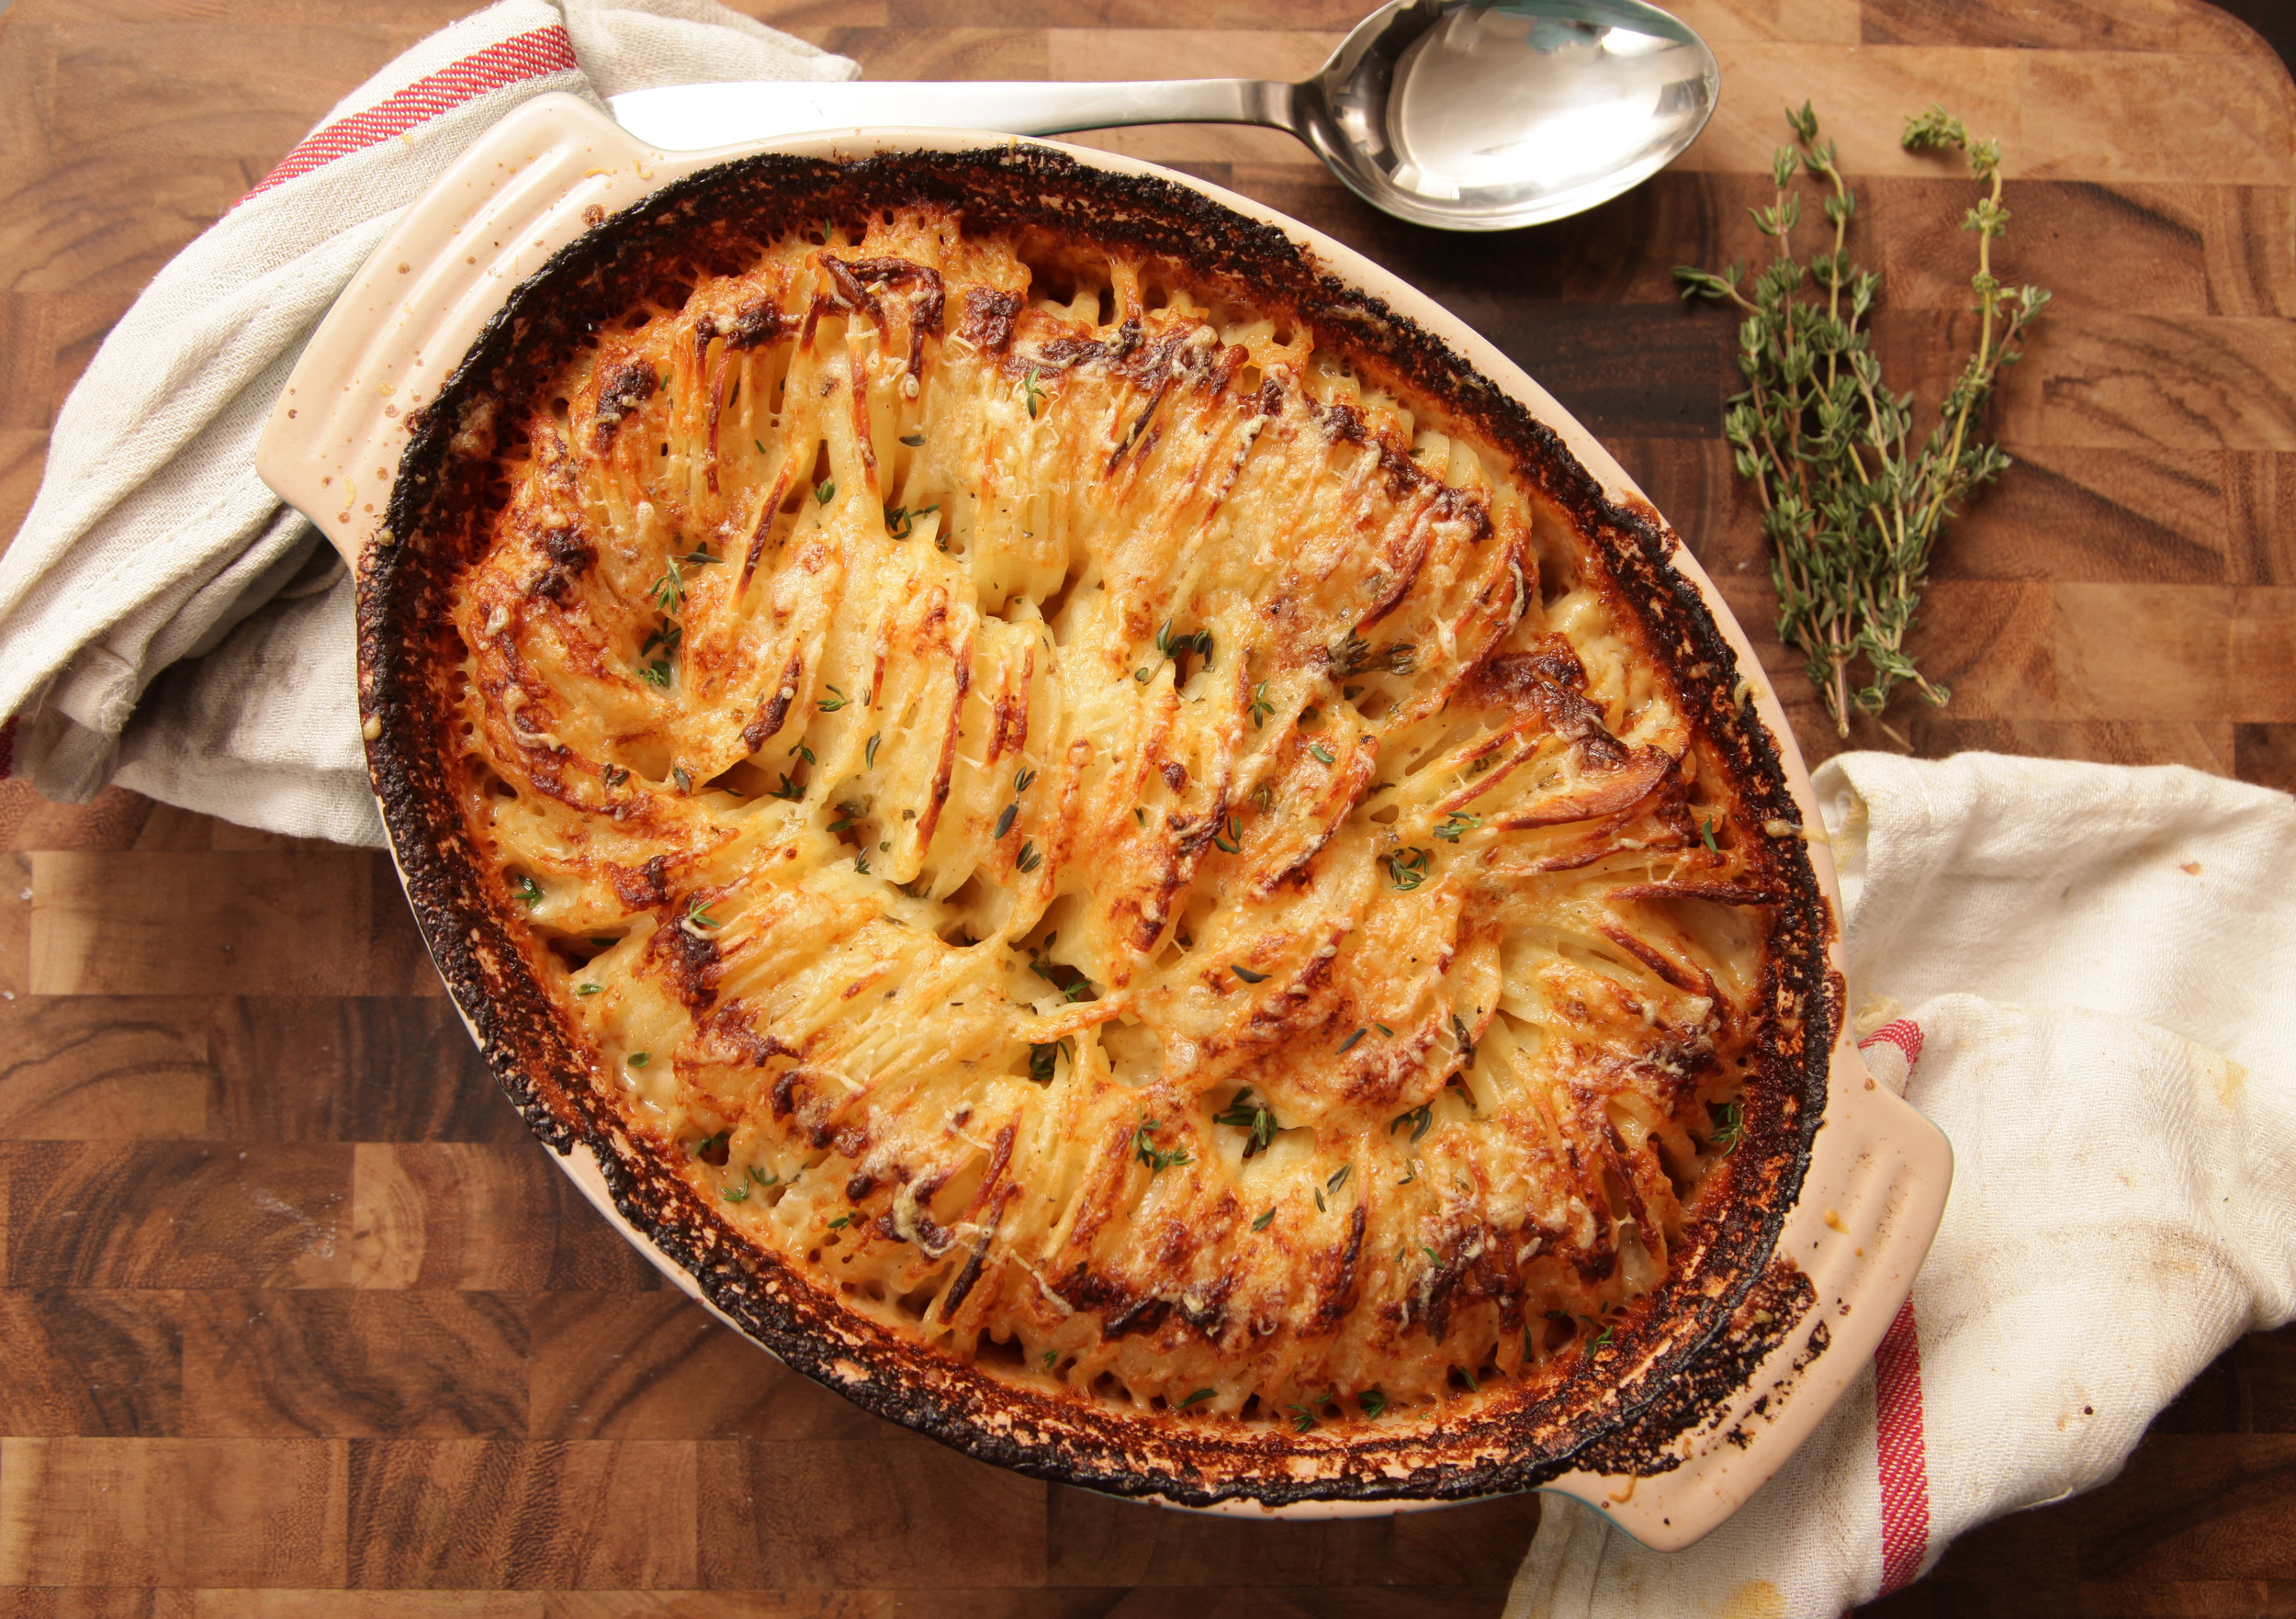 20131024-potato-gratin-hasselback-thanksgiving - -23.jpg